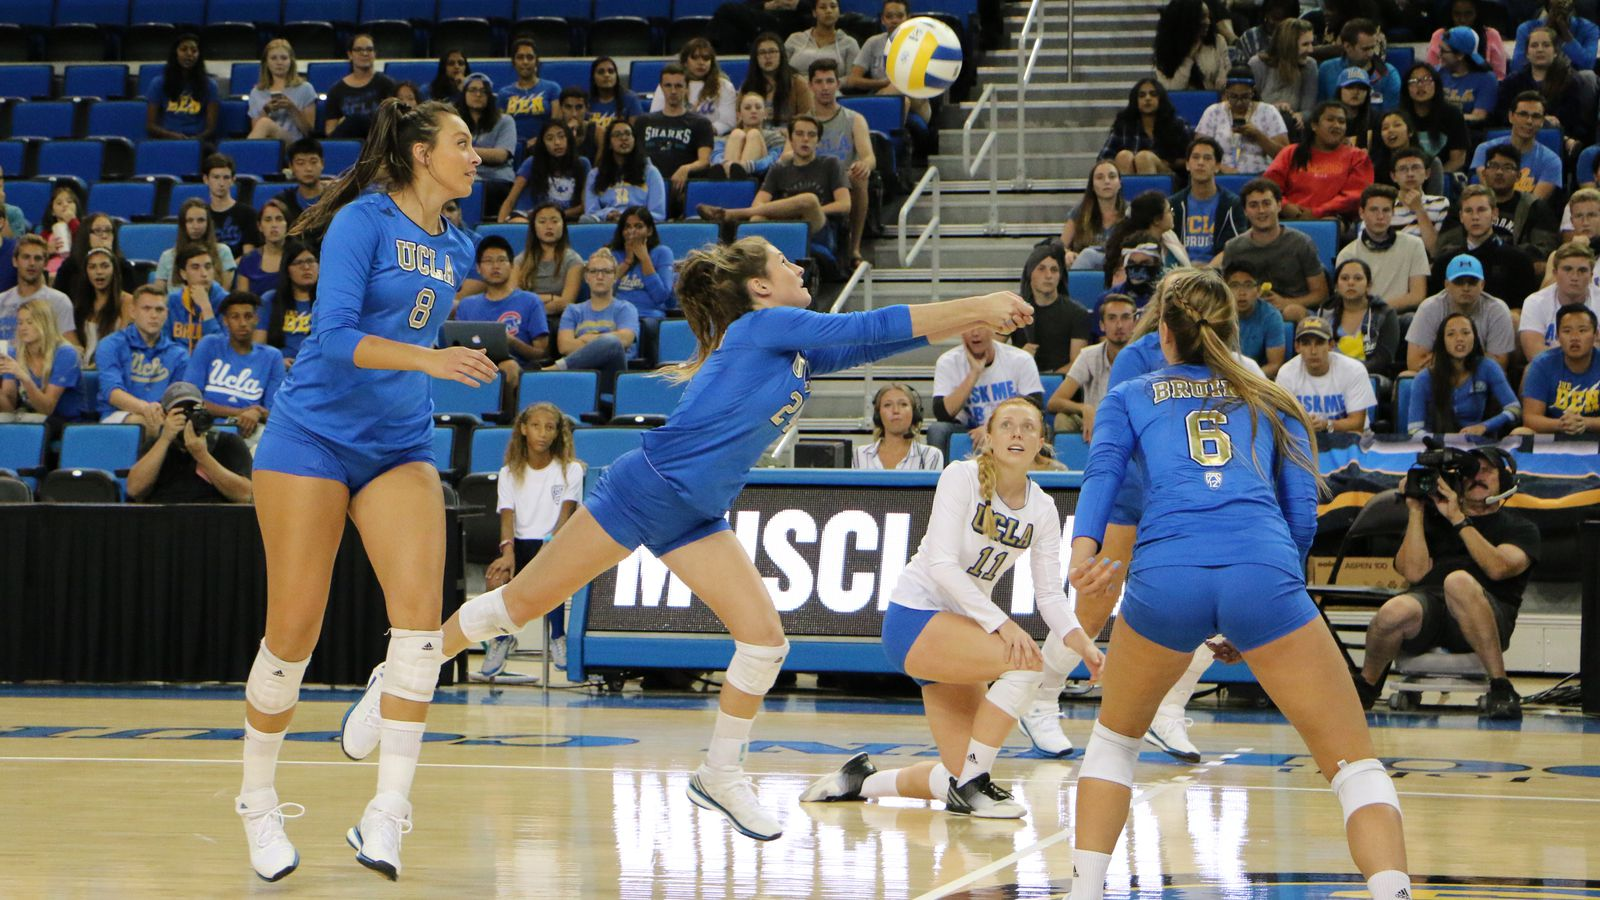 UCLA Women's Volleyball Looks To Extend Winning Streak Against UC Berkeley - Bruins Nation